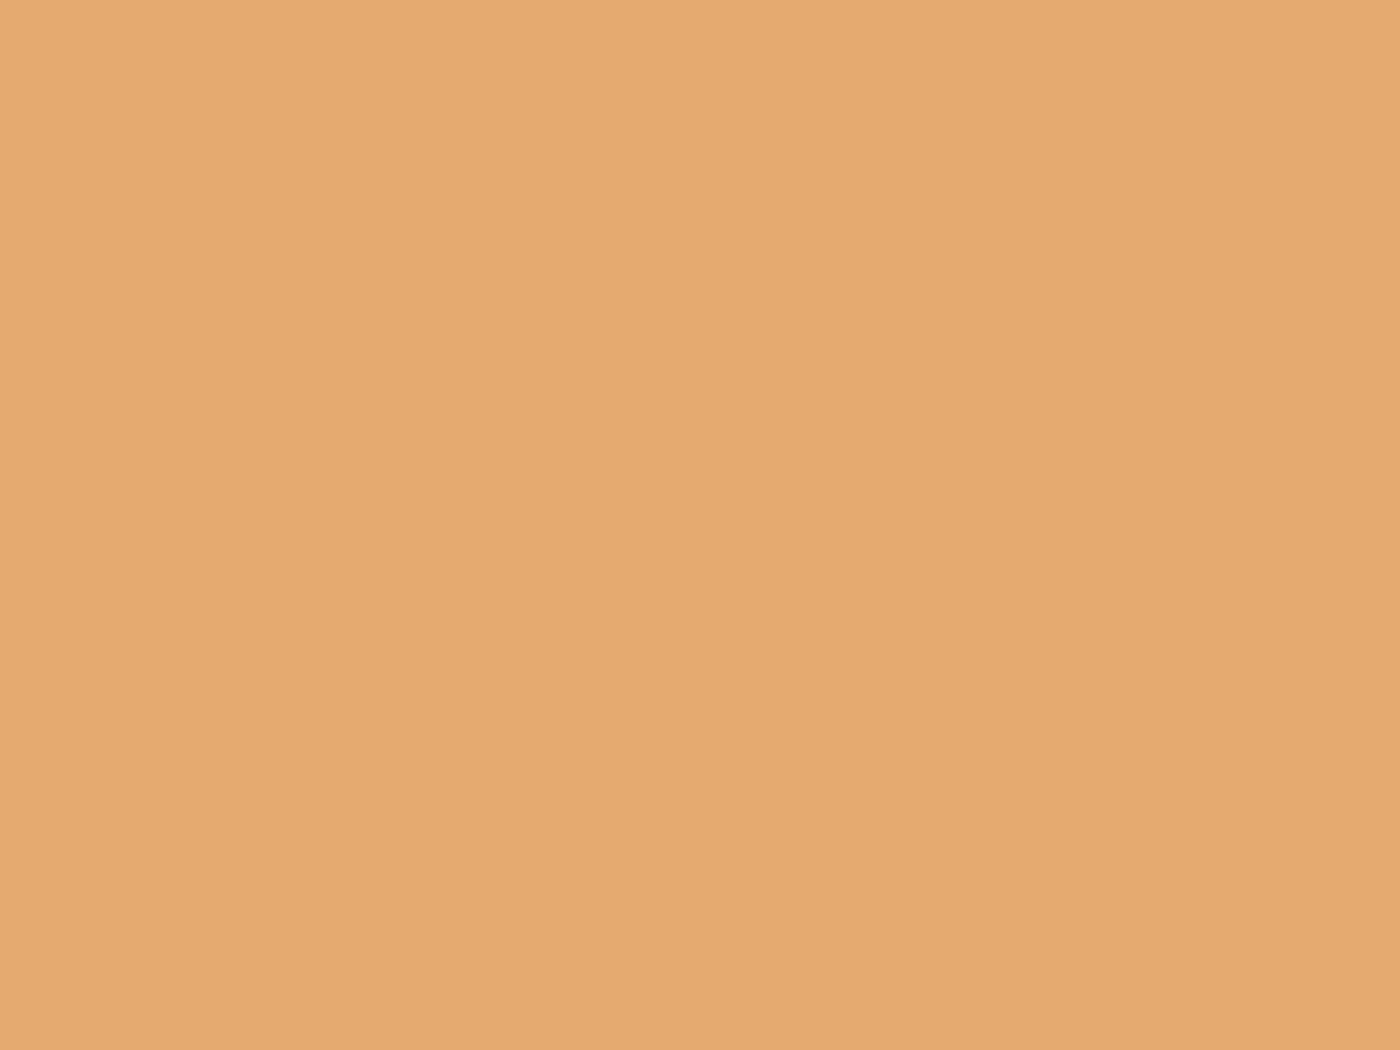 1400x1050 Fawn Solid Color Background